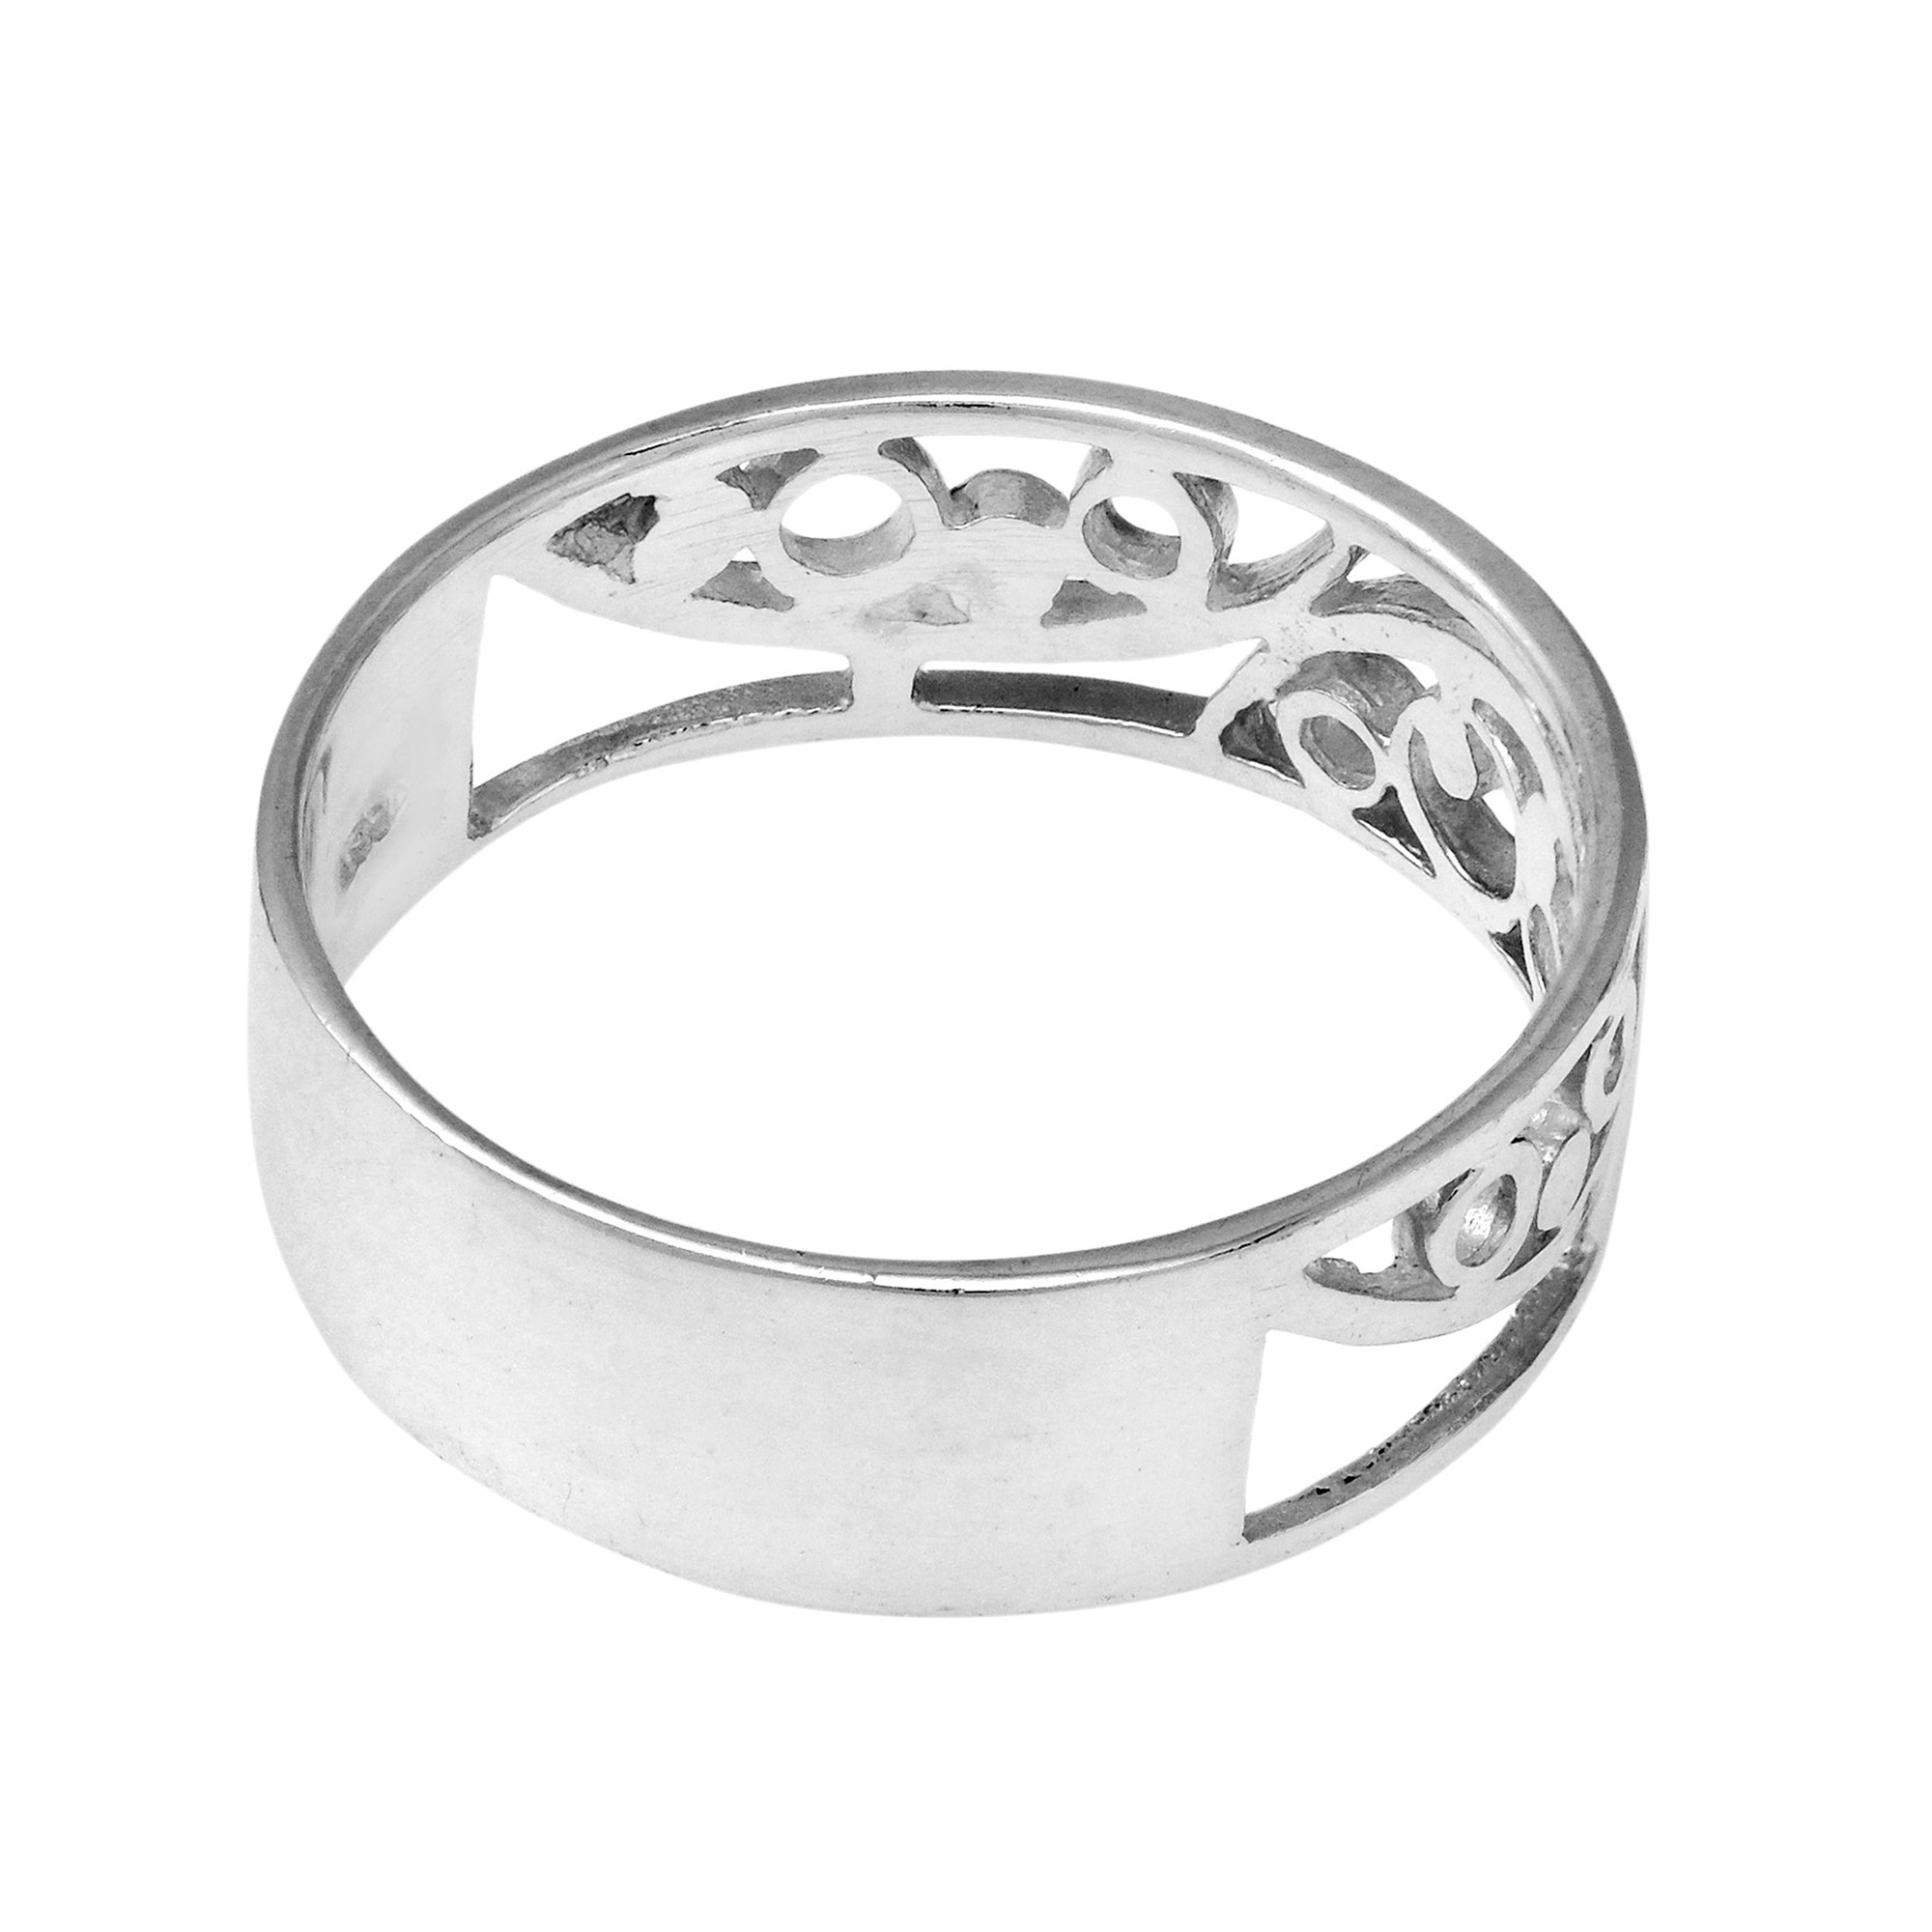 Filigree Abstract Open Circle 7mm Band Sterling Silver. Pinterest Design Engagement Rings. Perfect Wedding Rings. Trendy Engagement Rings. Tulip Style Wedding Rings. Evermarker Wedding Rings. Princesa Engagement Rings. V Band Wedding Rings. Bioshock Wedding Rings